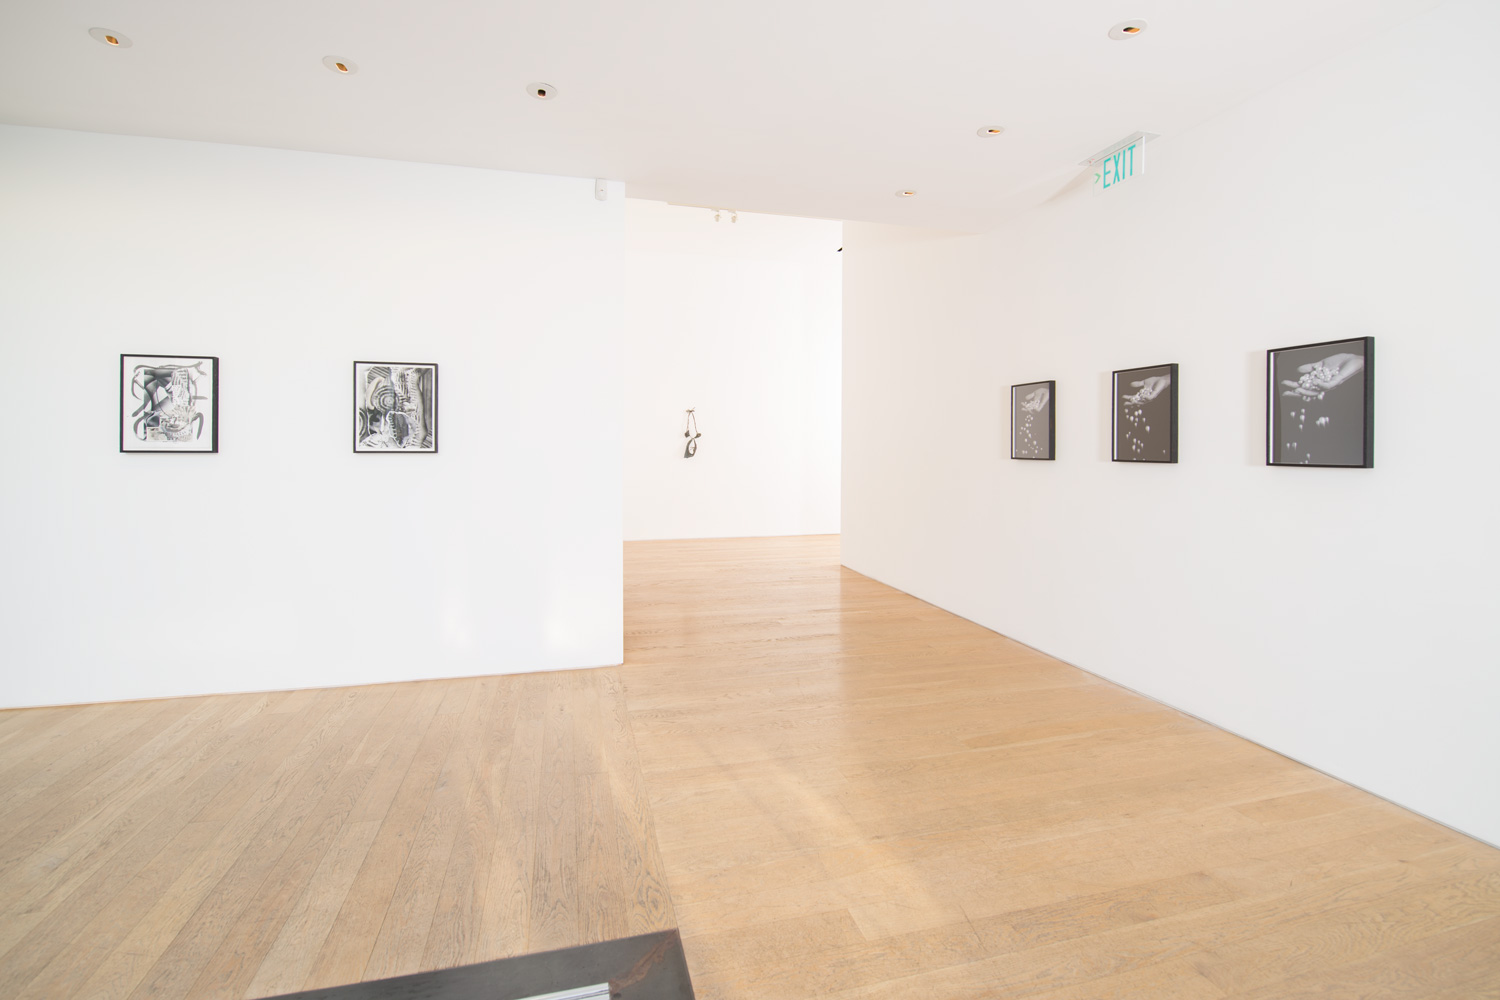 Fay Ray  Part Object  Installation View, 2014